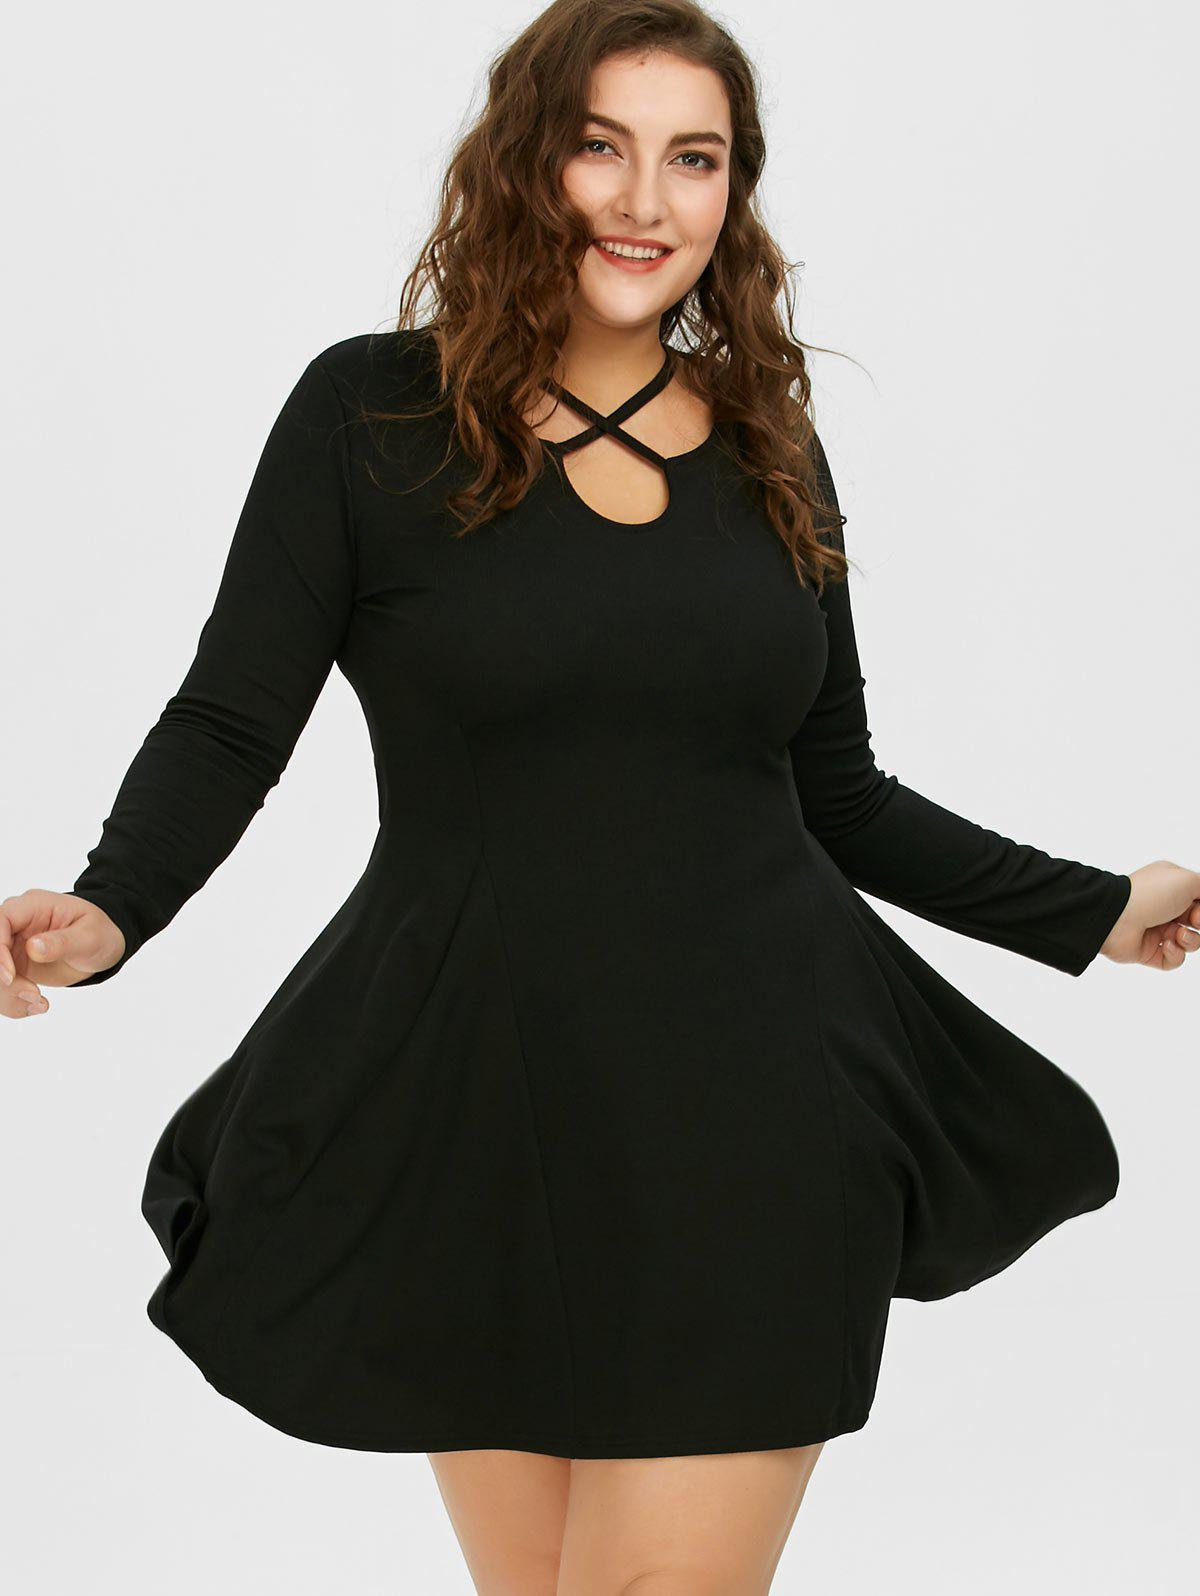 2018 cutout plus size skater dress with long sleeves black xl in